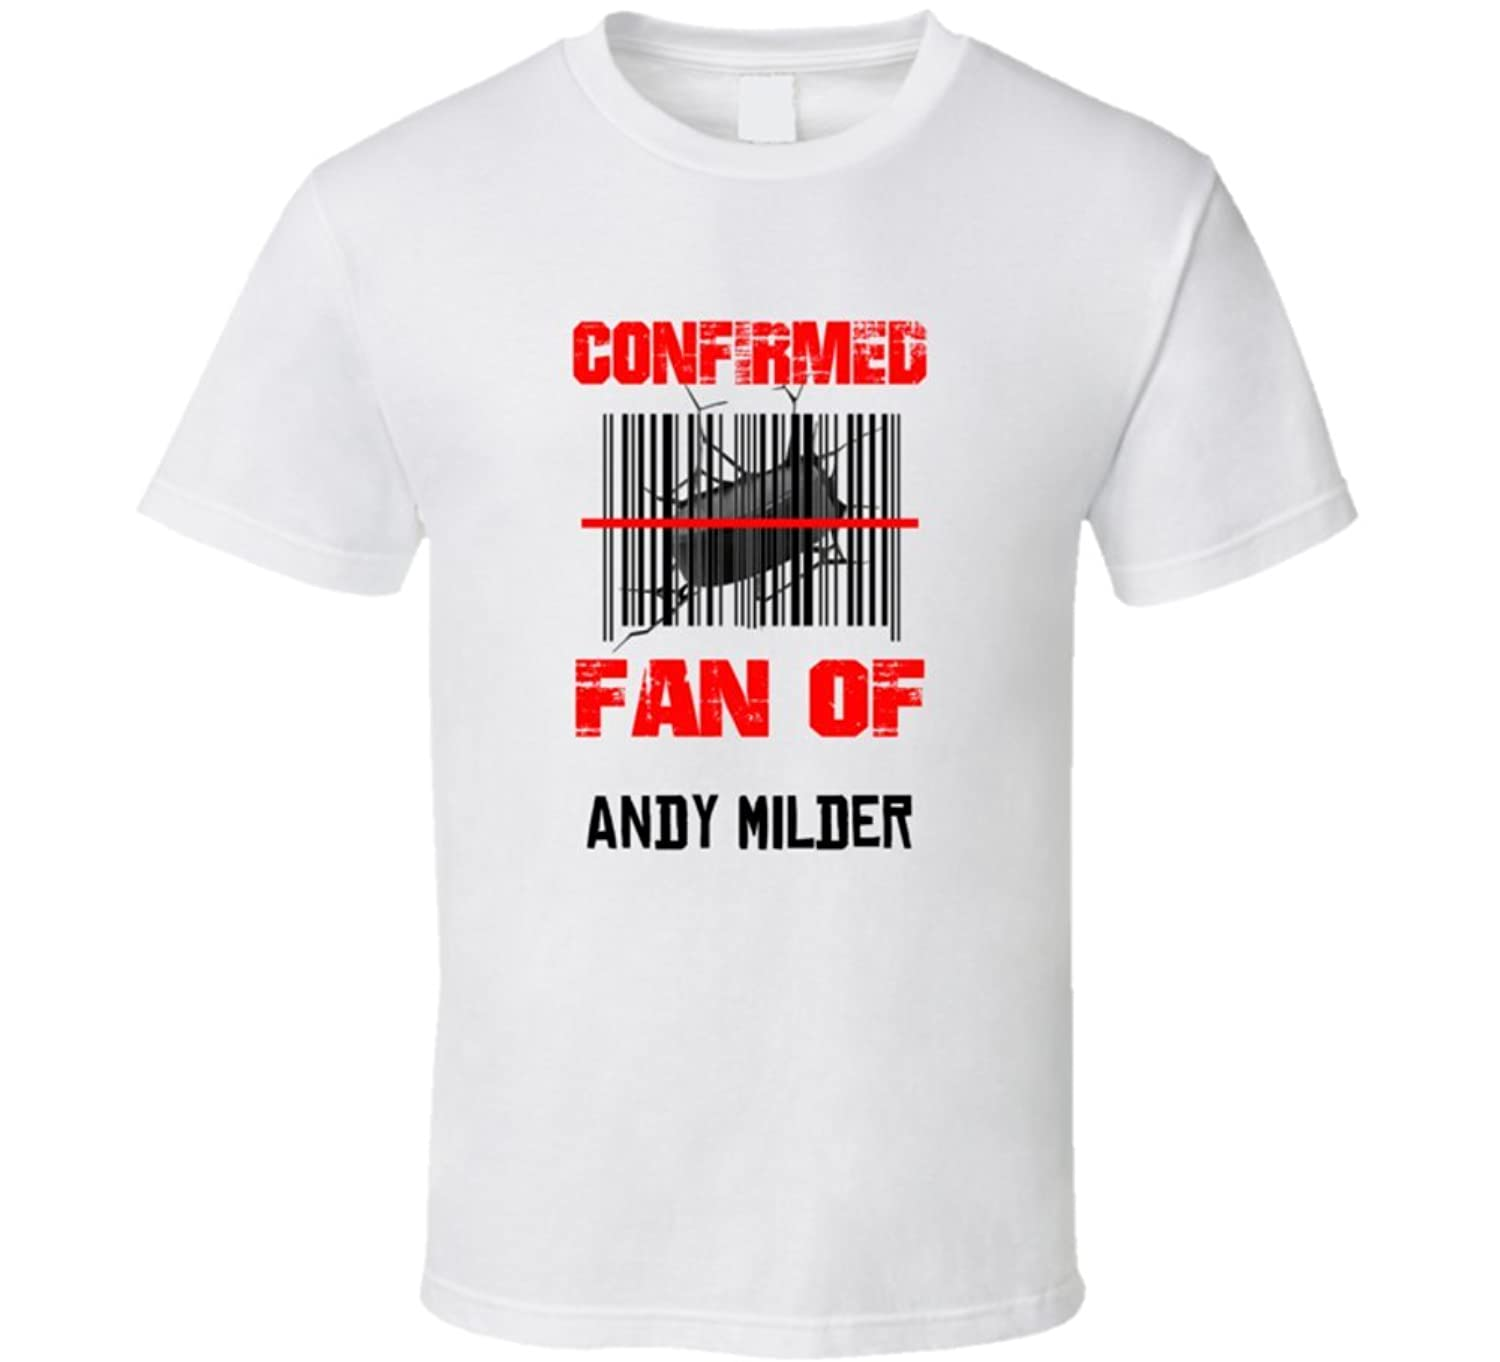 Andy Milder NHL Scanned Barcode Fan T shirt 2XL White